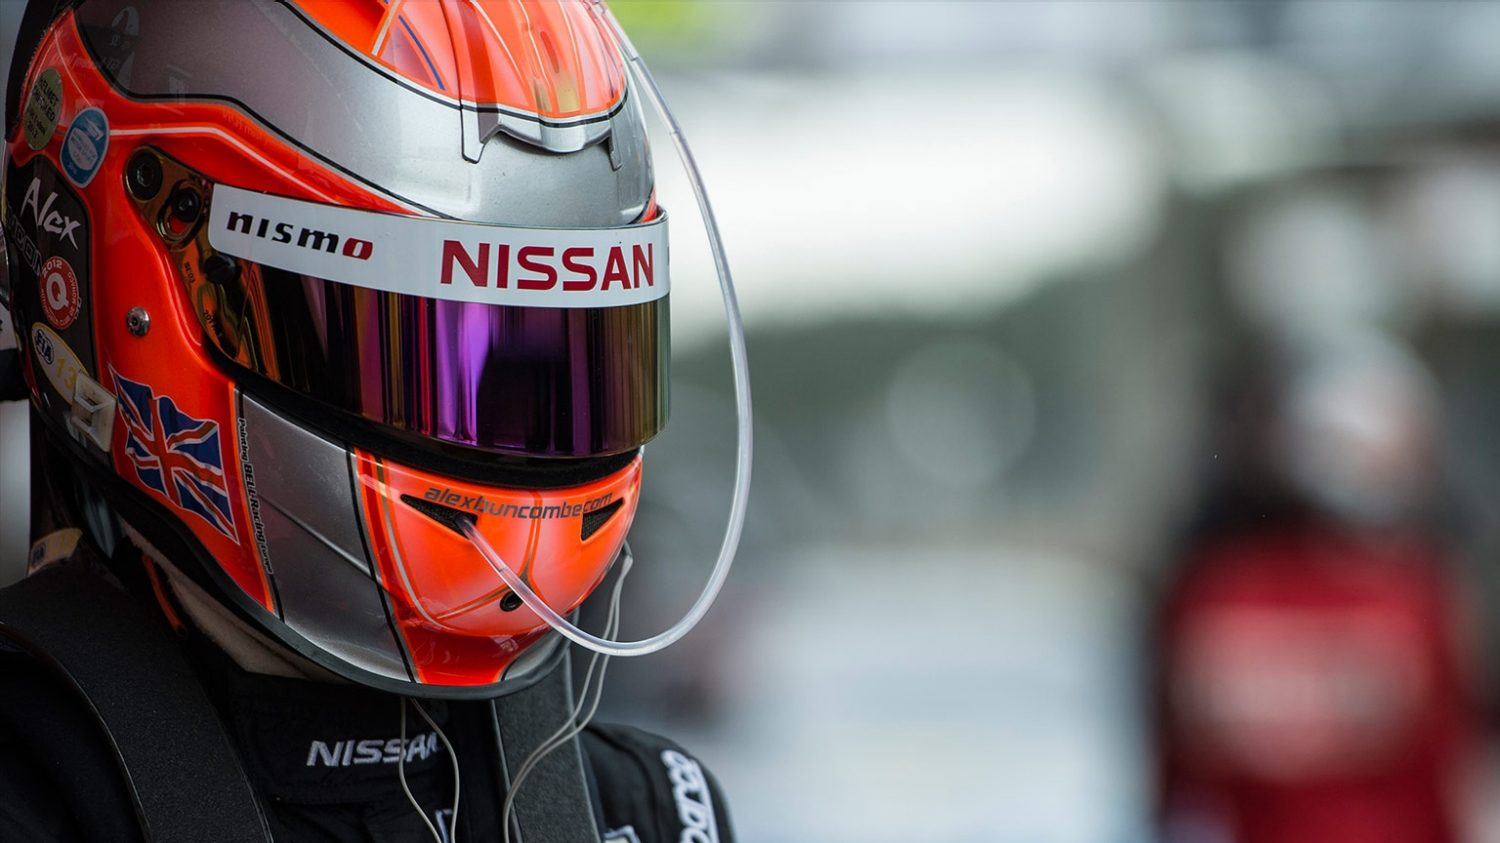 Experience Nissan - Motorsport - NISMO team - Le Mans